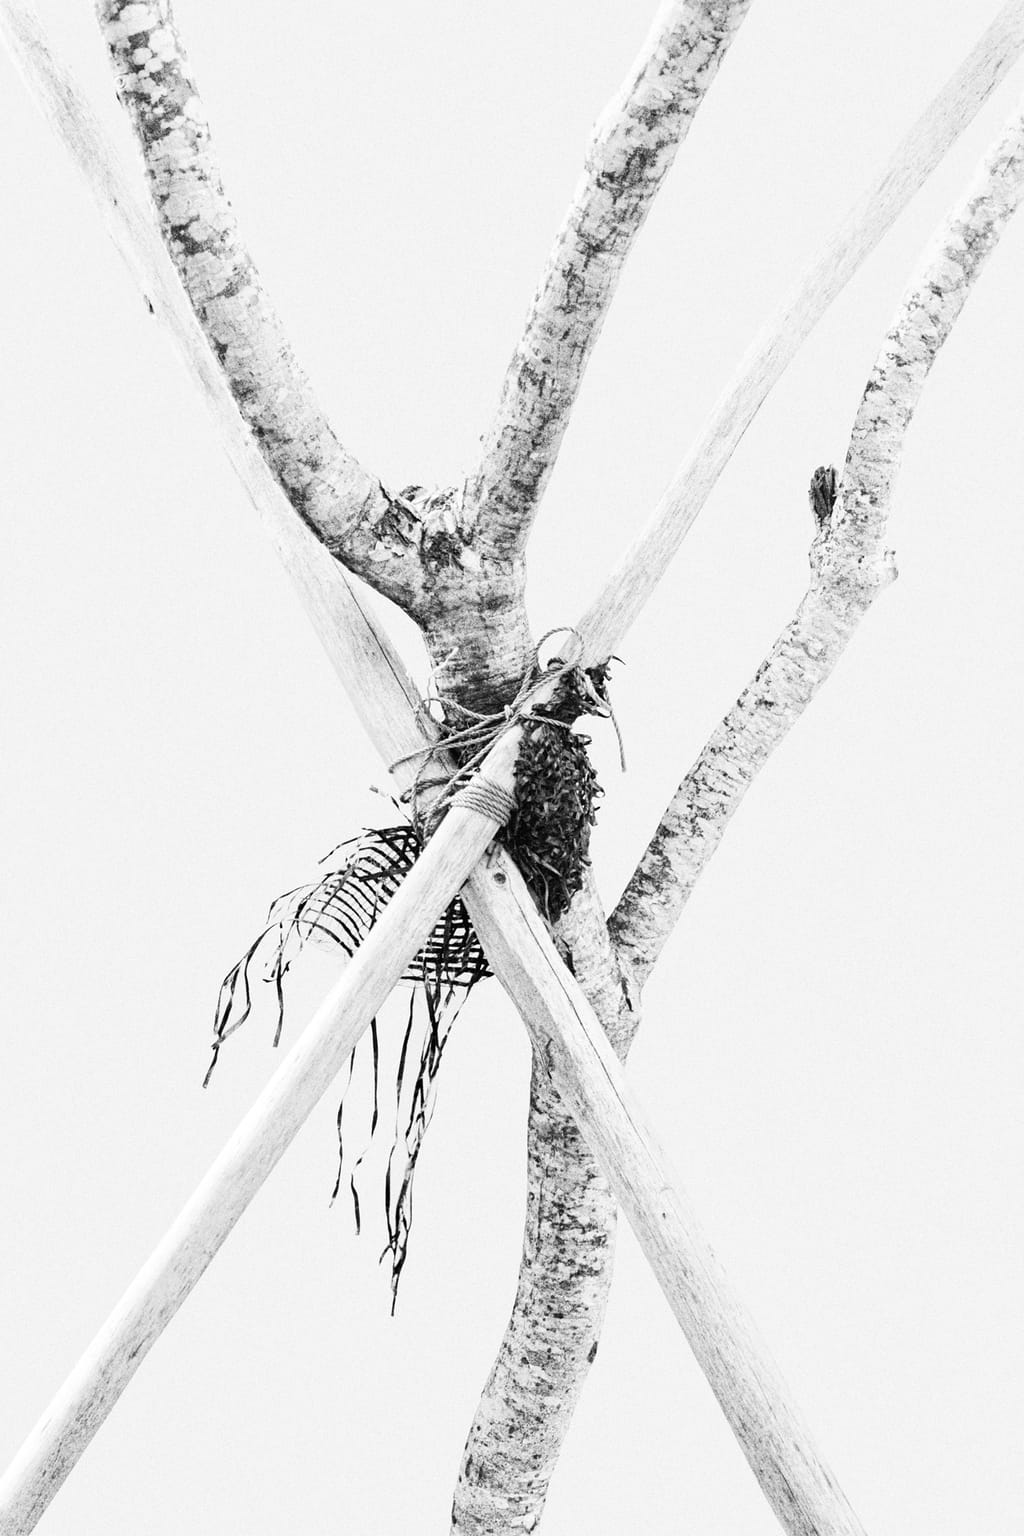 Black and white photo of a tree tied to several wooden branches, supporting it and protected by gauze; against a white background.